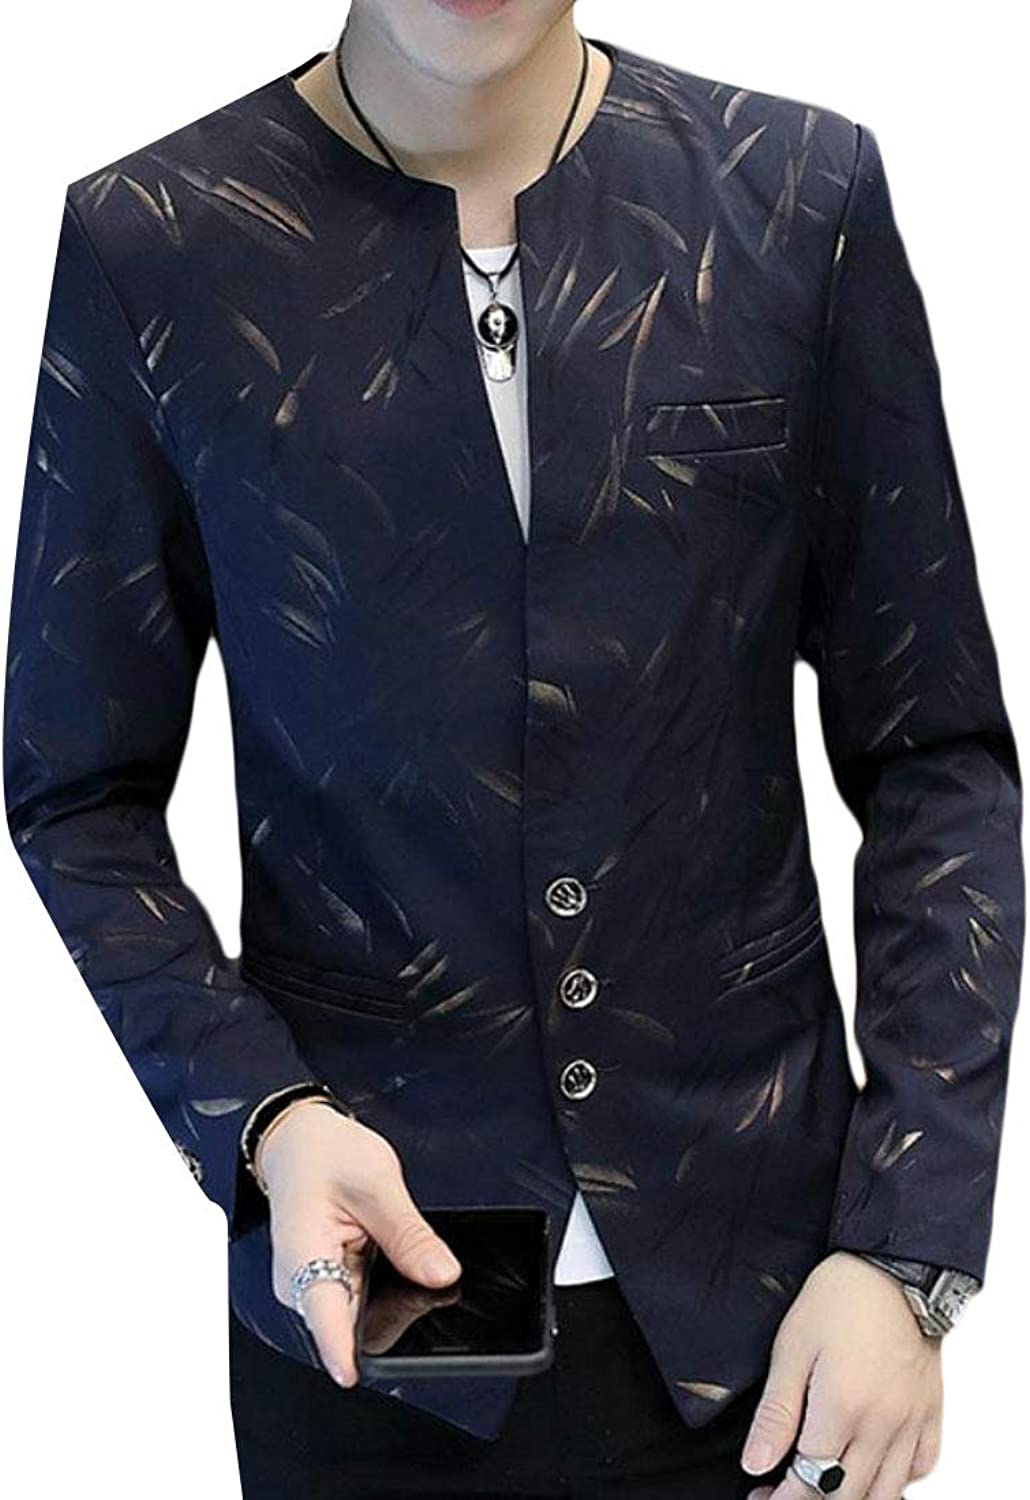 8cb91c640a830f Cromoncent Men Long Sleeve Printing Fashion Fall Casual Coat Coat Coat  Button Down Blazer Suit Jacket 640b9e